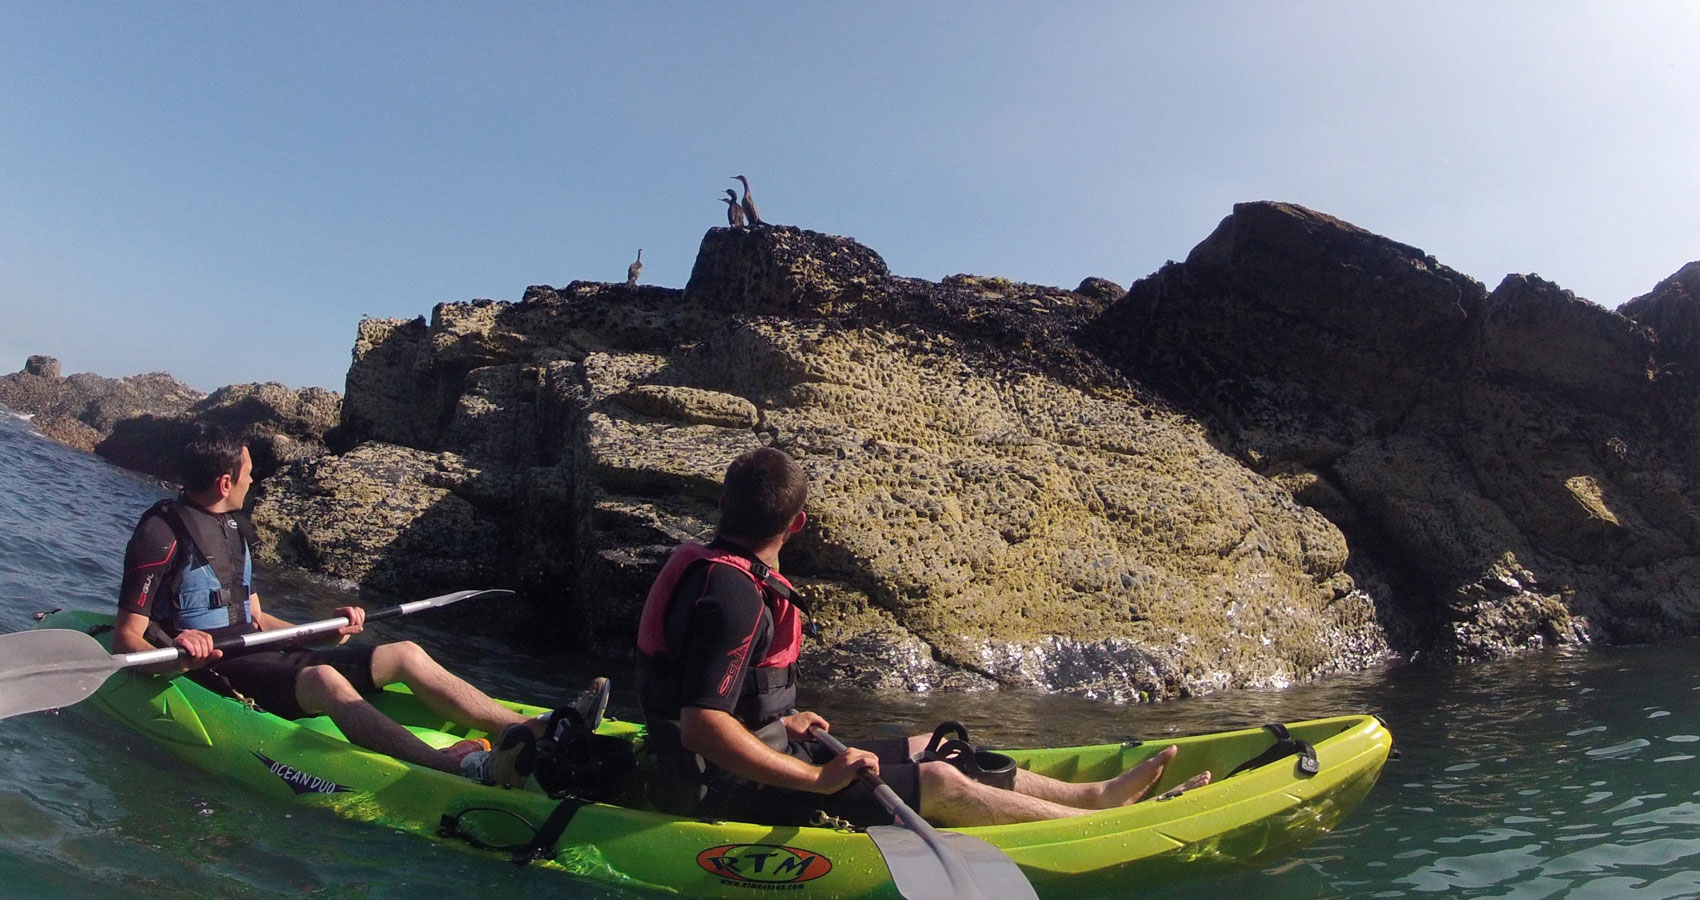 E.g. 'Kayak tours Port Isaac, Cornwall' Wildlife kayak tours.